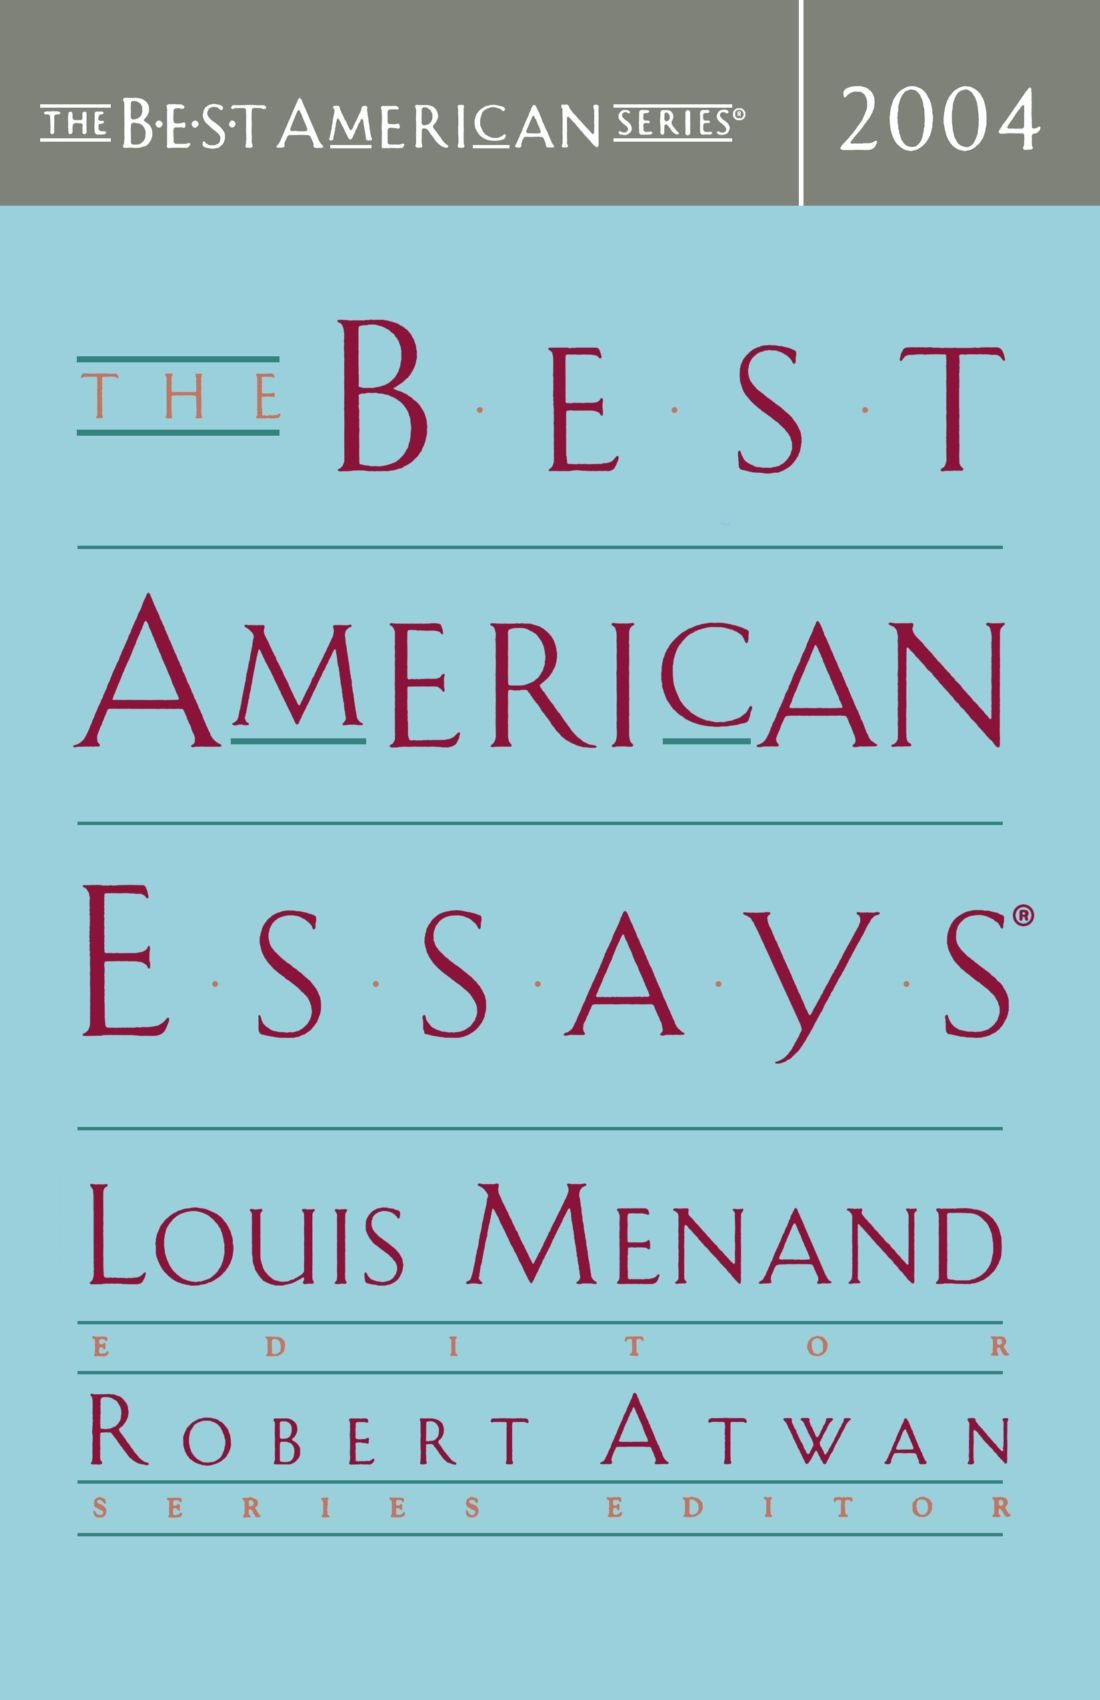 015 Essay Example The Best American Essays Wonderful 2018 Pdf 2017 Table Of Contents 2015 Free Full